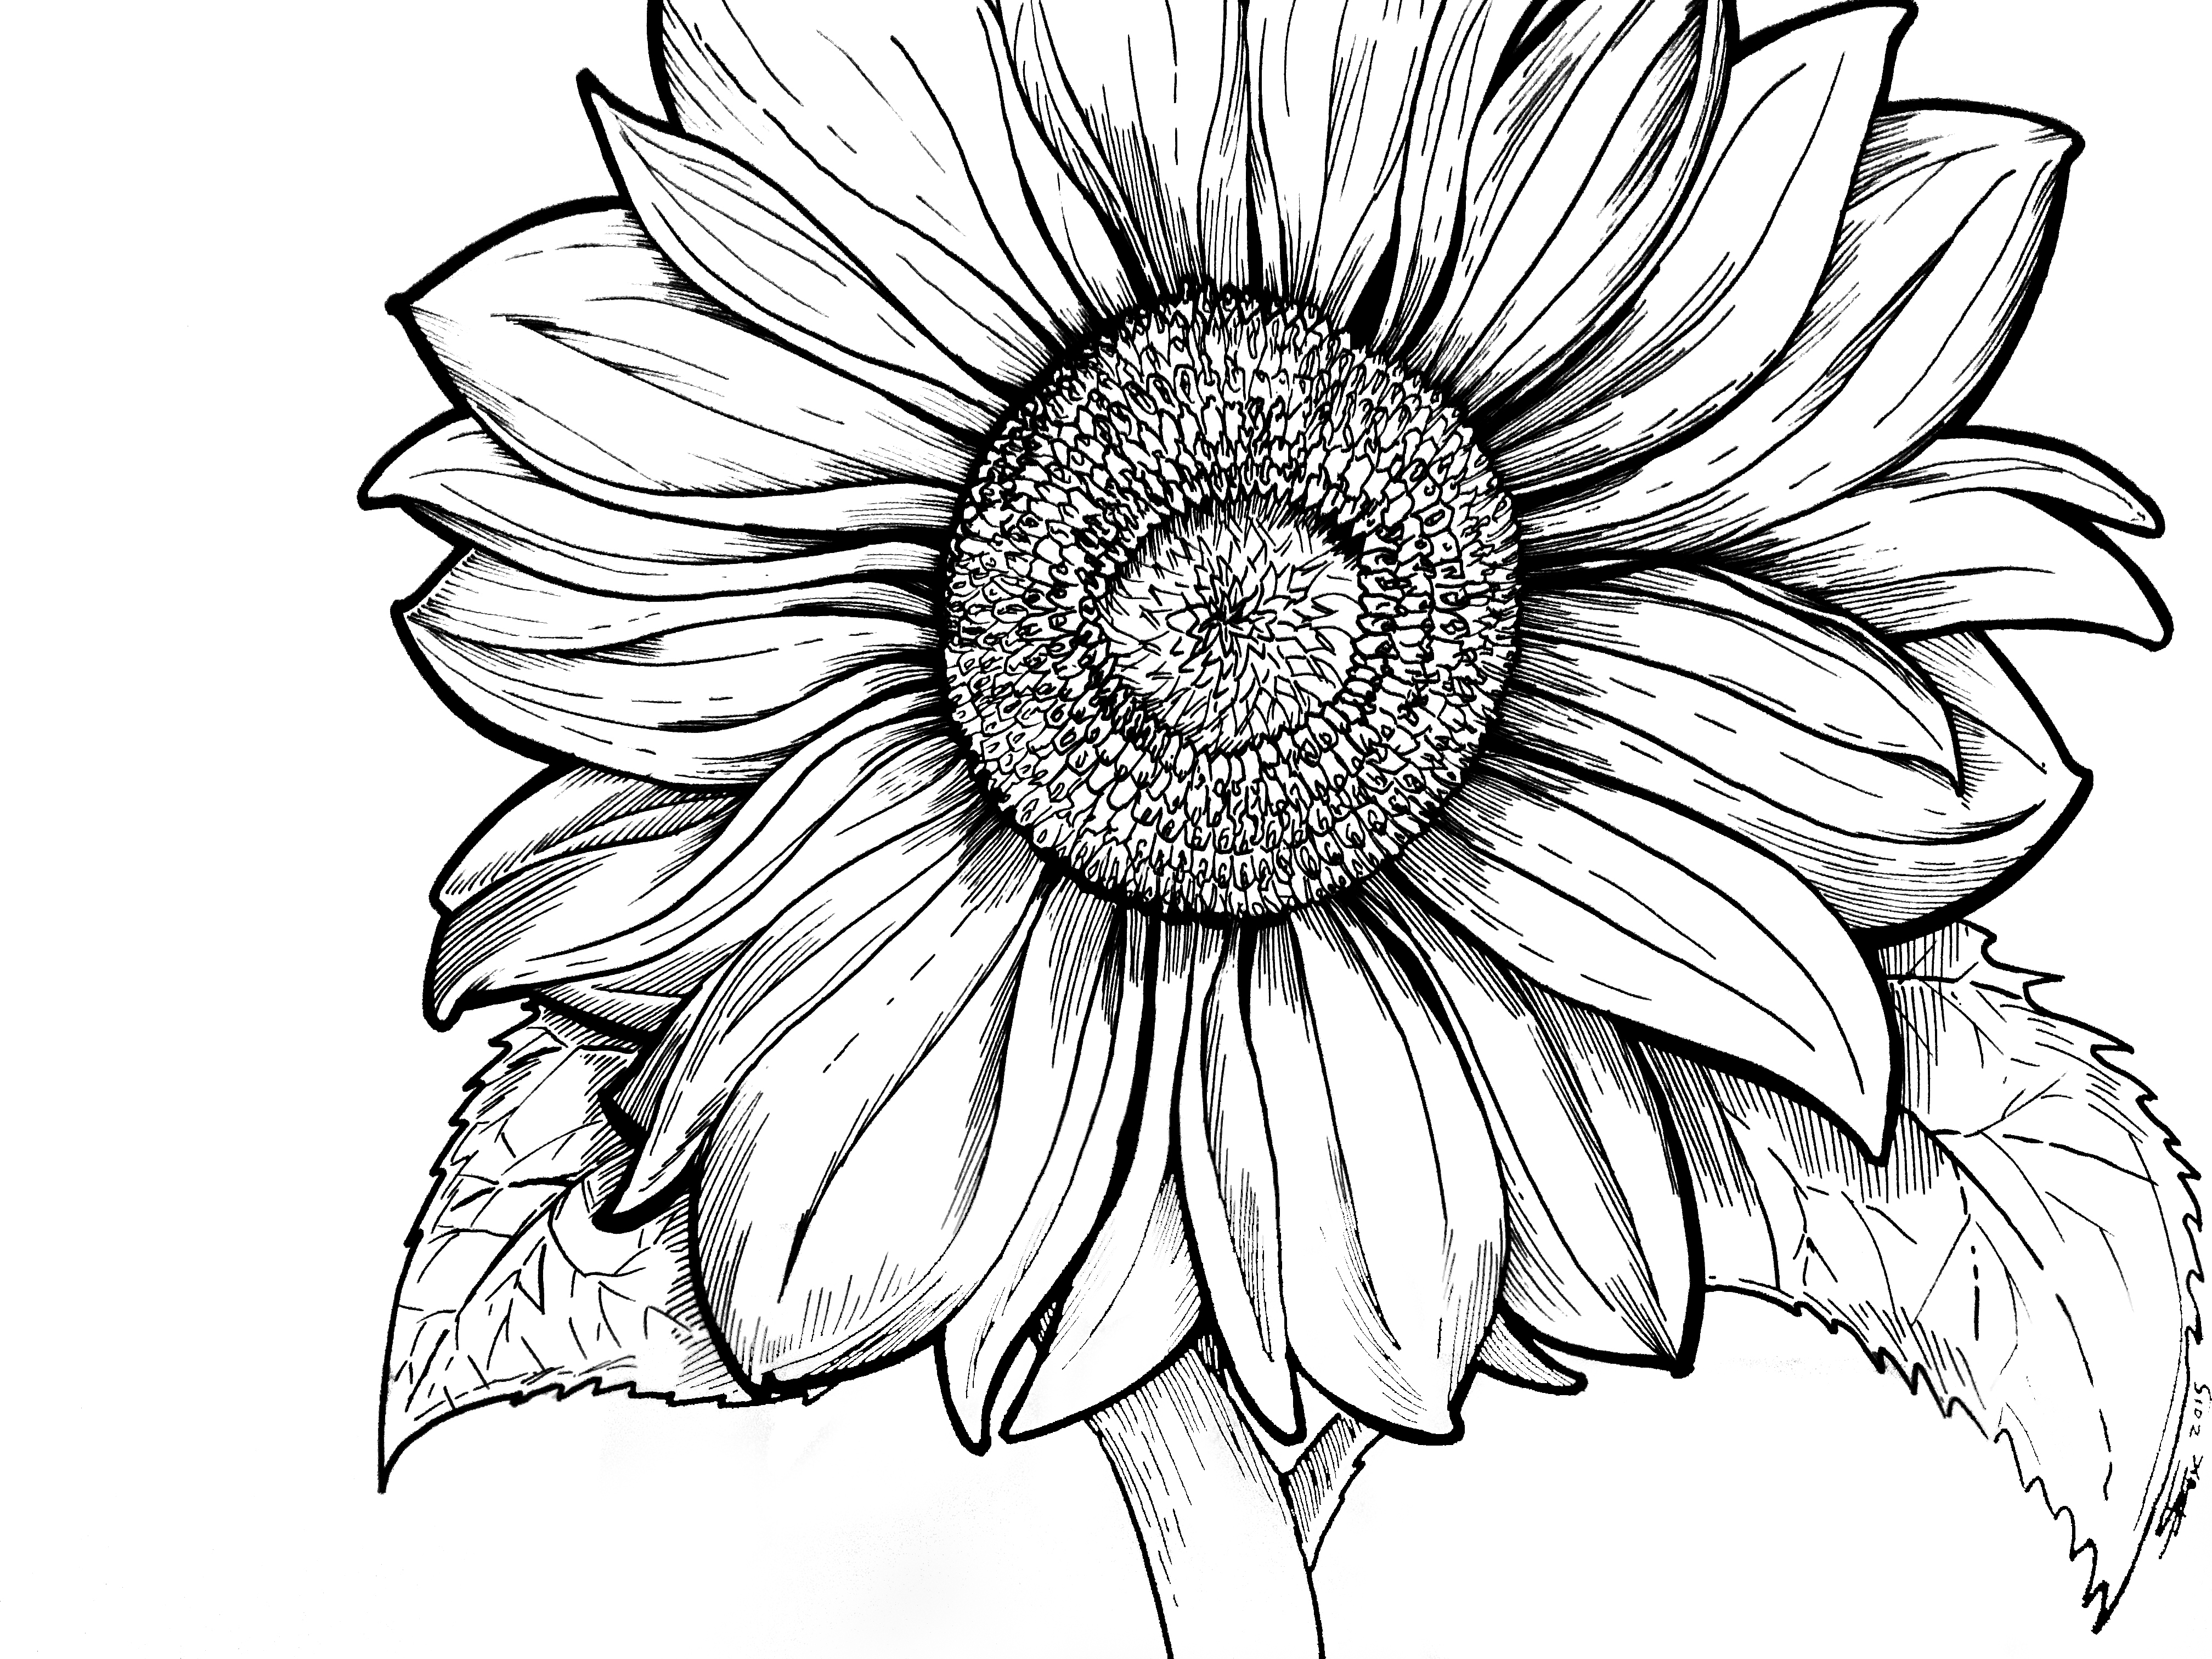 Whimsical Garden Designs Coloring Book For Adults - Relaxing ... | 3024x4032